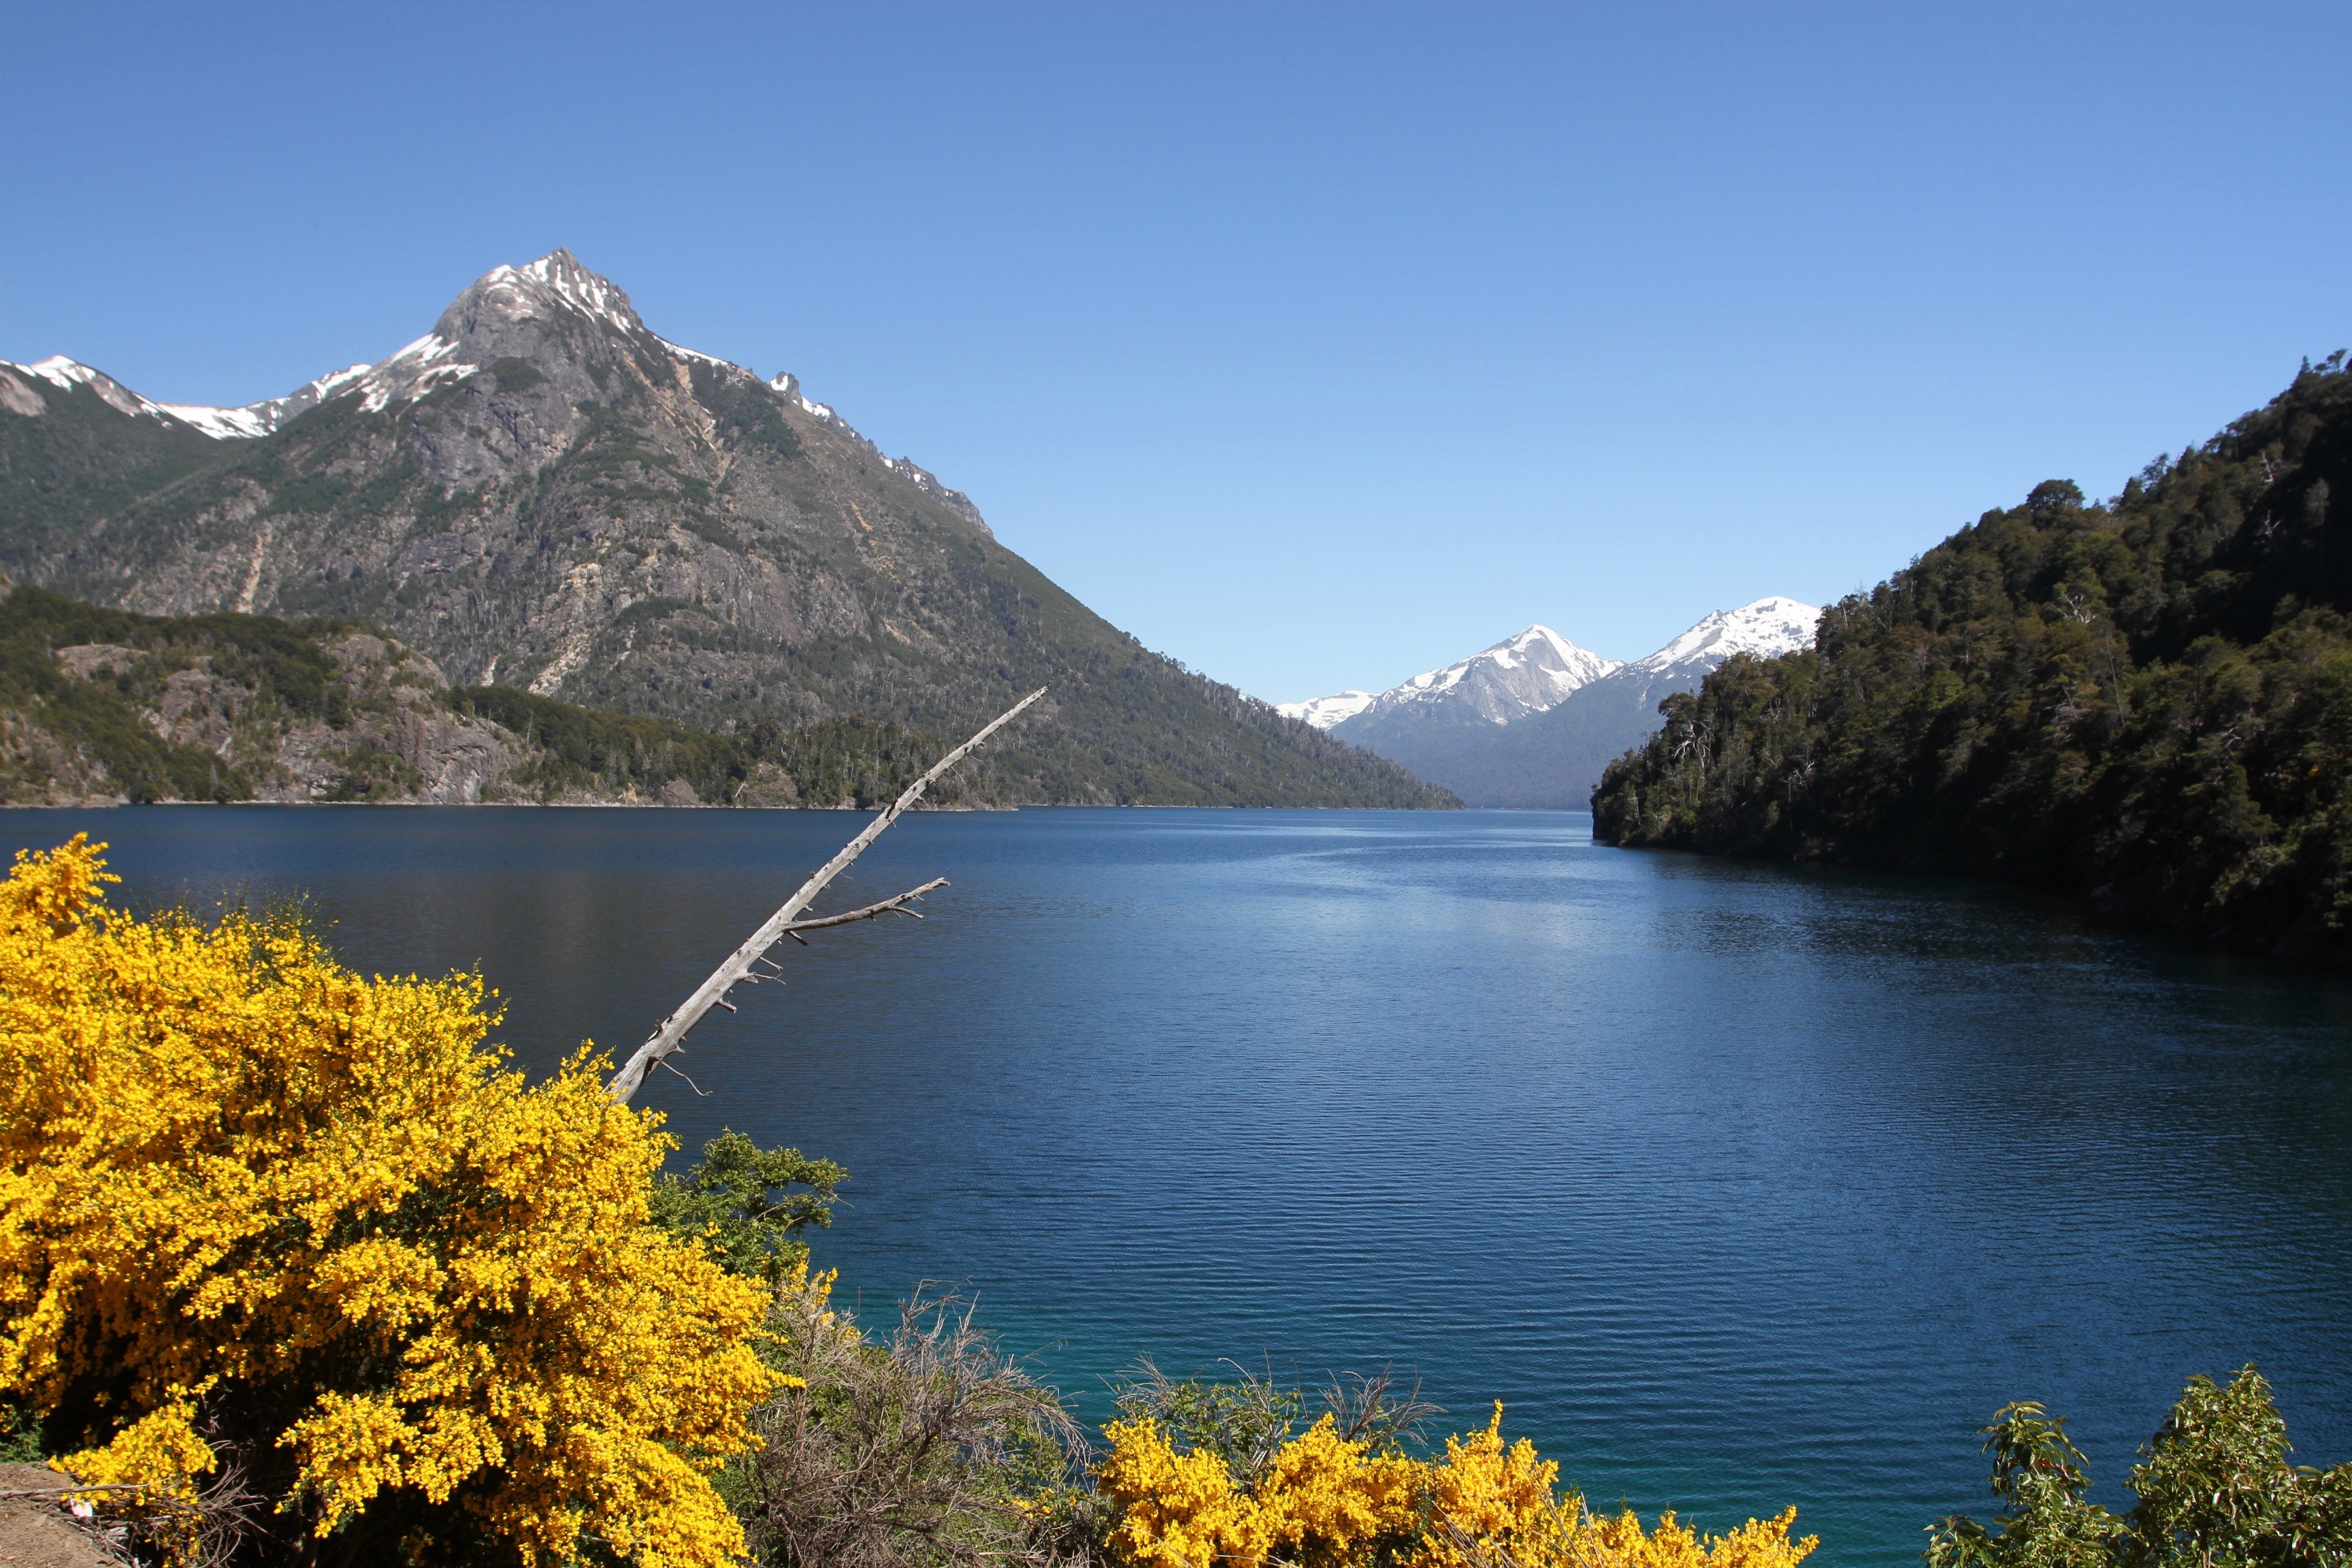 Circuito Chico Bariloche : Mountains lakes and beautiful views bariloches circuito chico